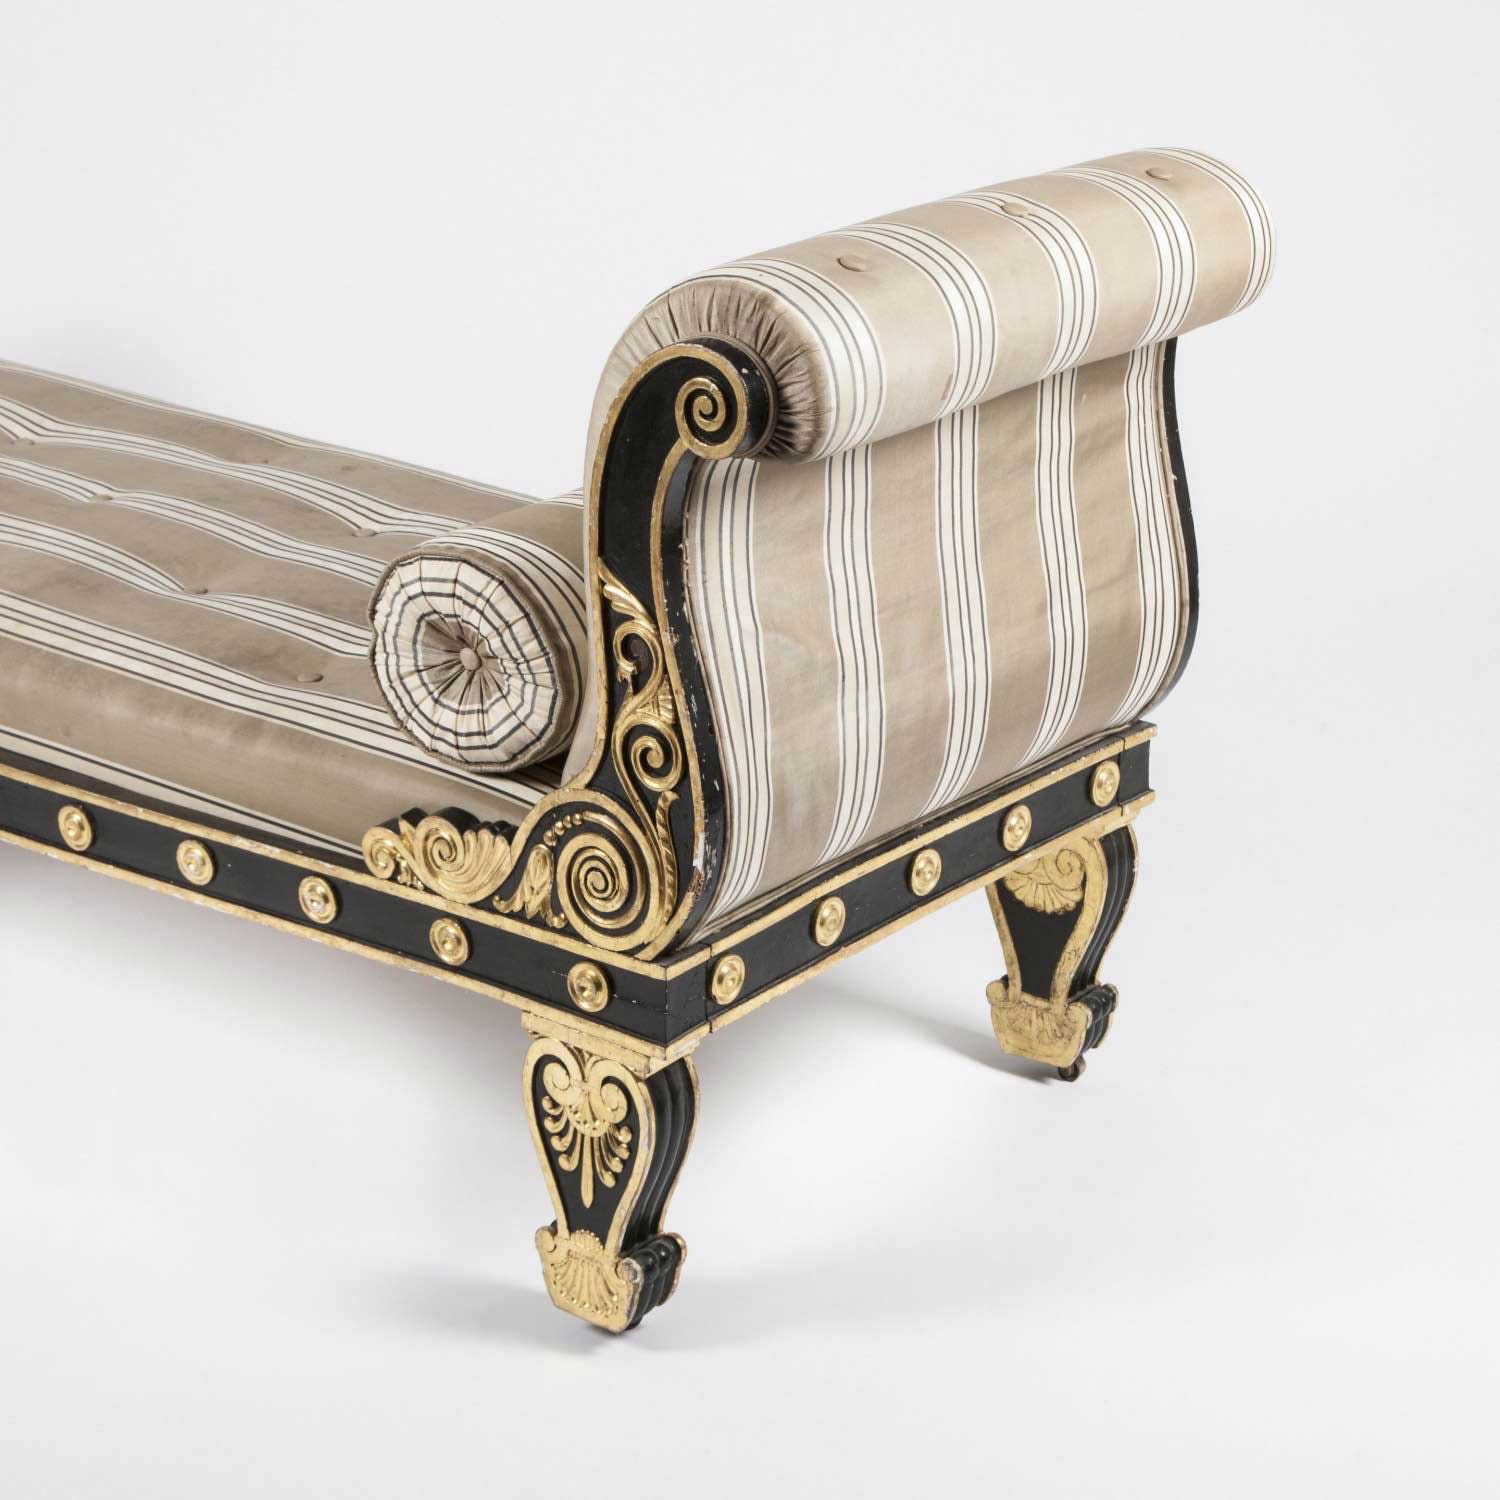 REGENCY CHAISE LONGUE